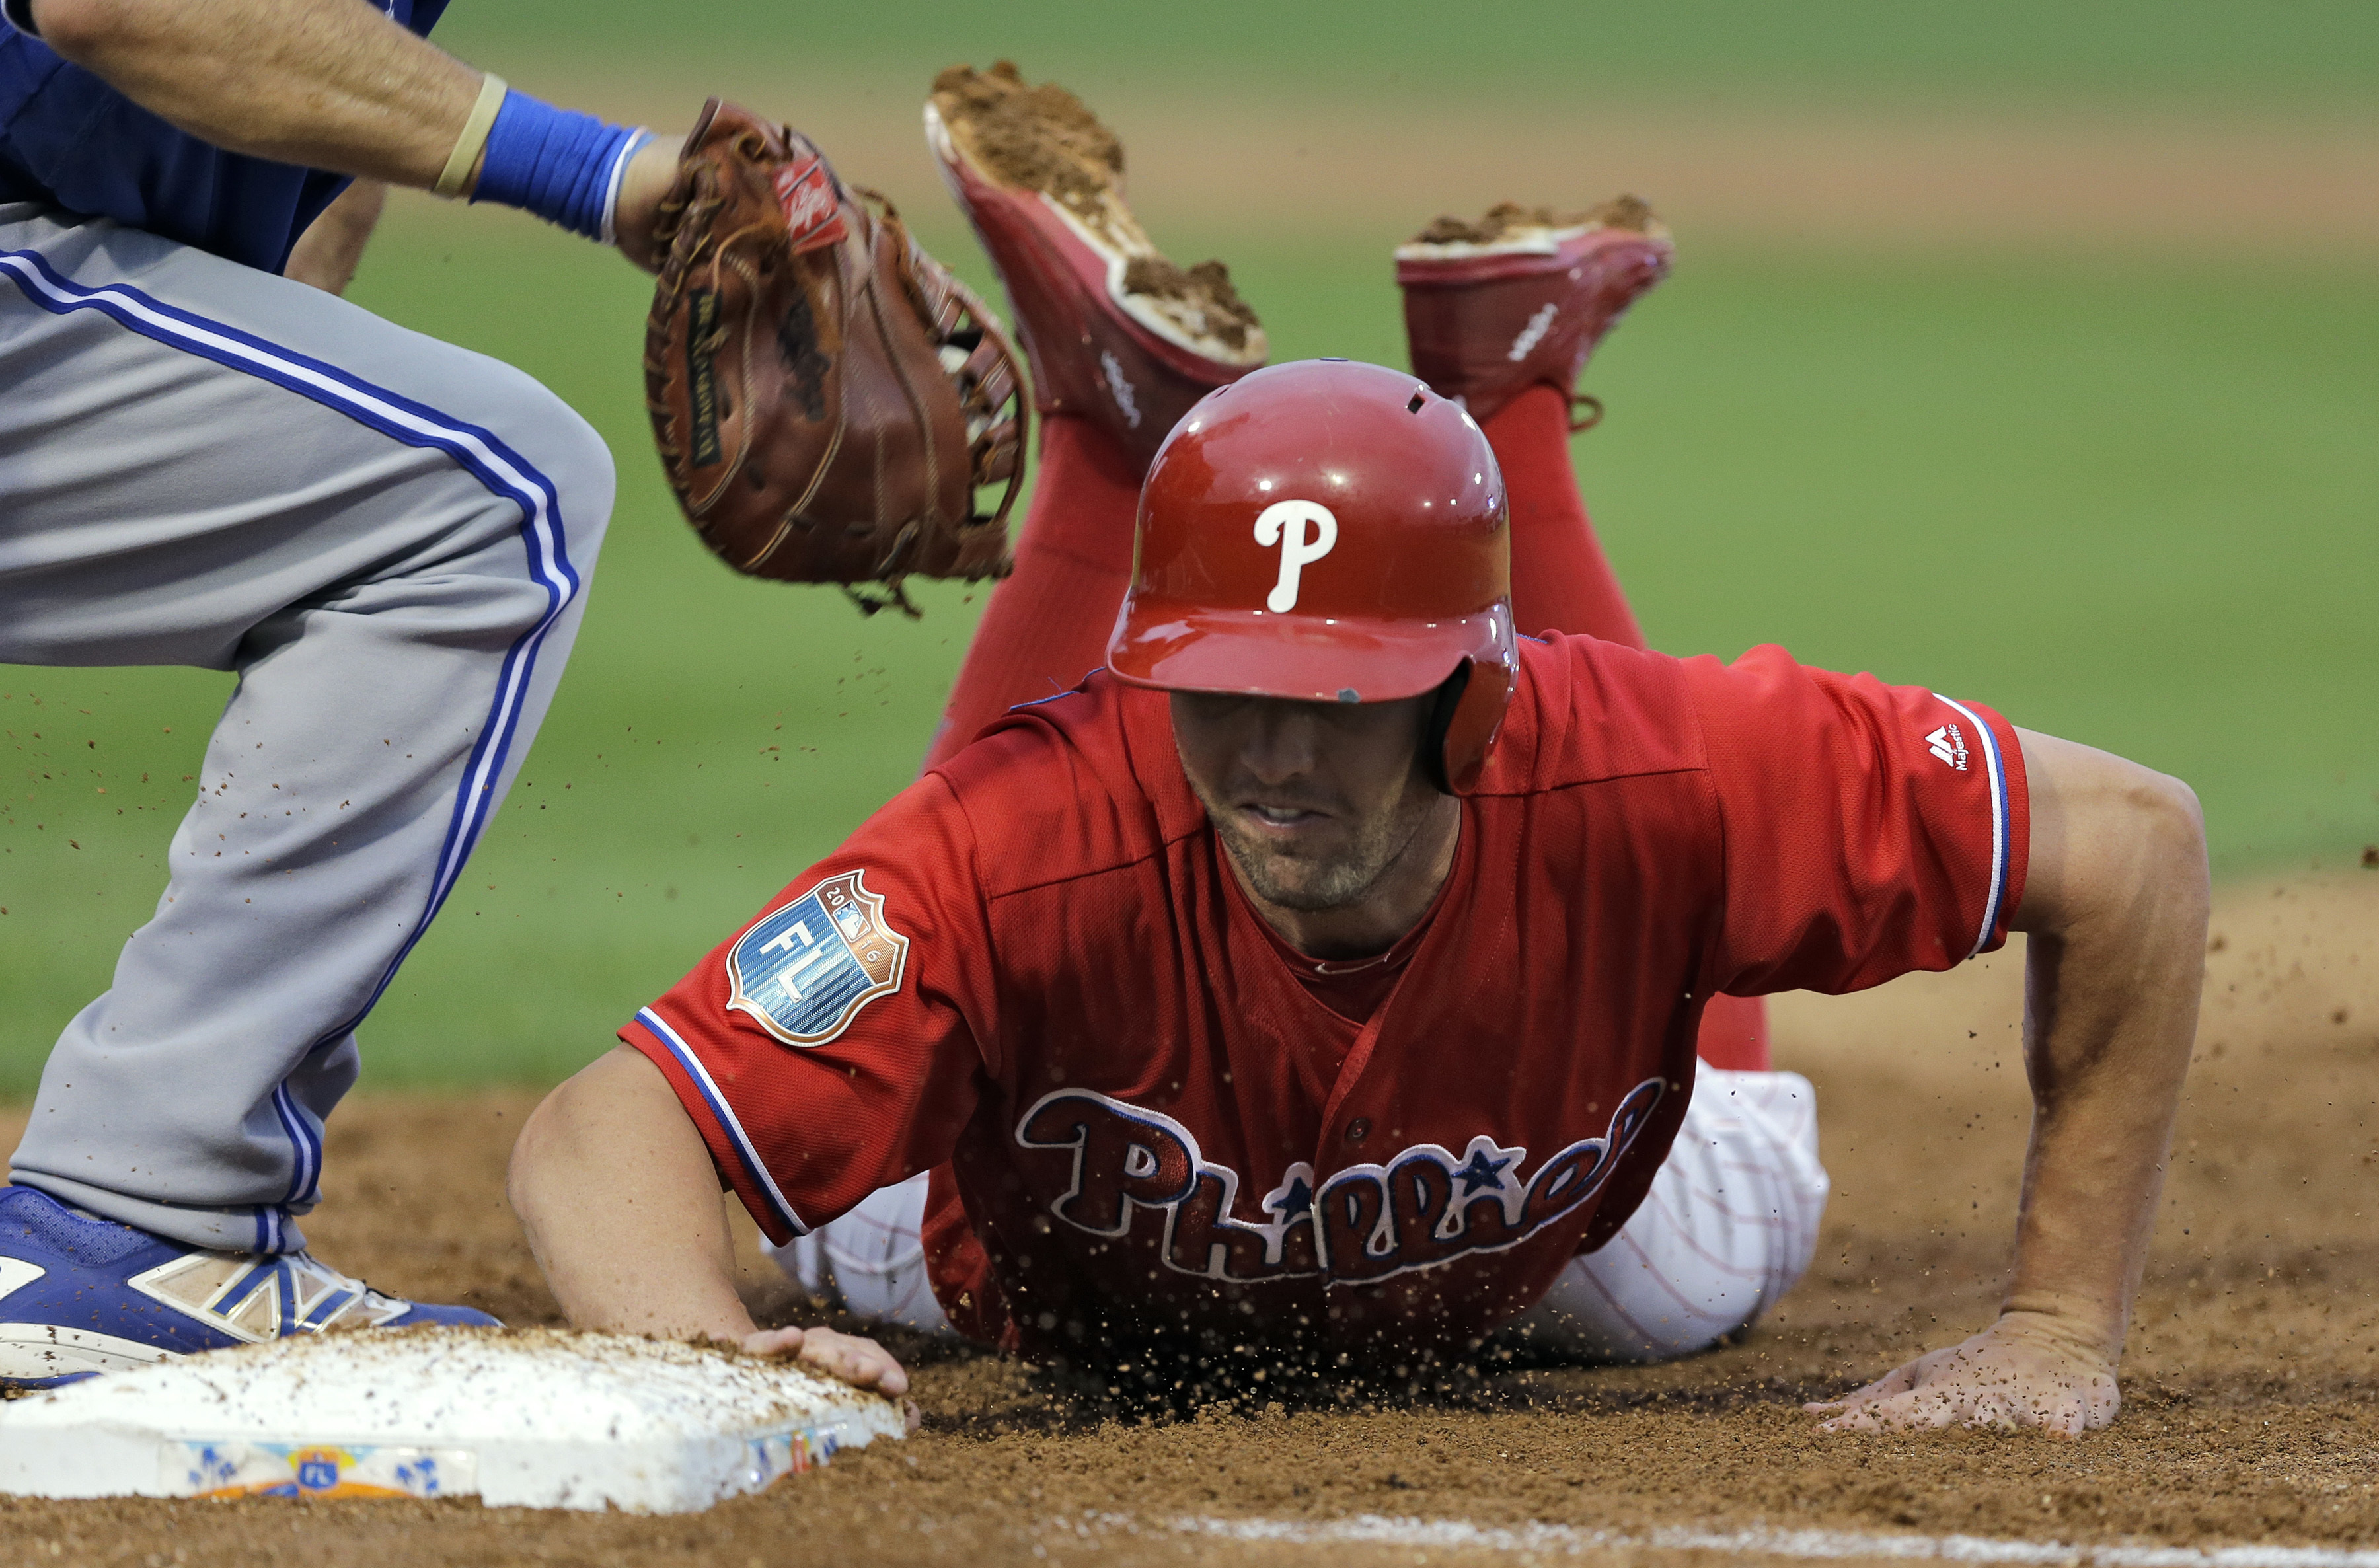 Philadelphia Phillies' Peter Bourjos dives back safely to first base ahead of the tag by Toronto Blue Jays' Casey Kotchman during the second inning of a spring training baseball game Friday, March 25, 2016, in Clearwater, Fla. (AP Photo/Chris O'Meara)